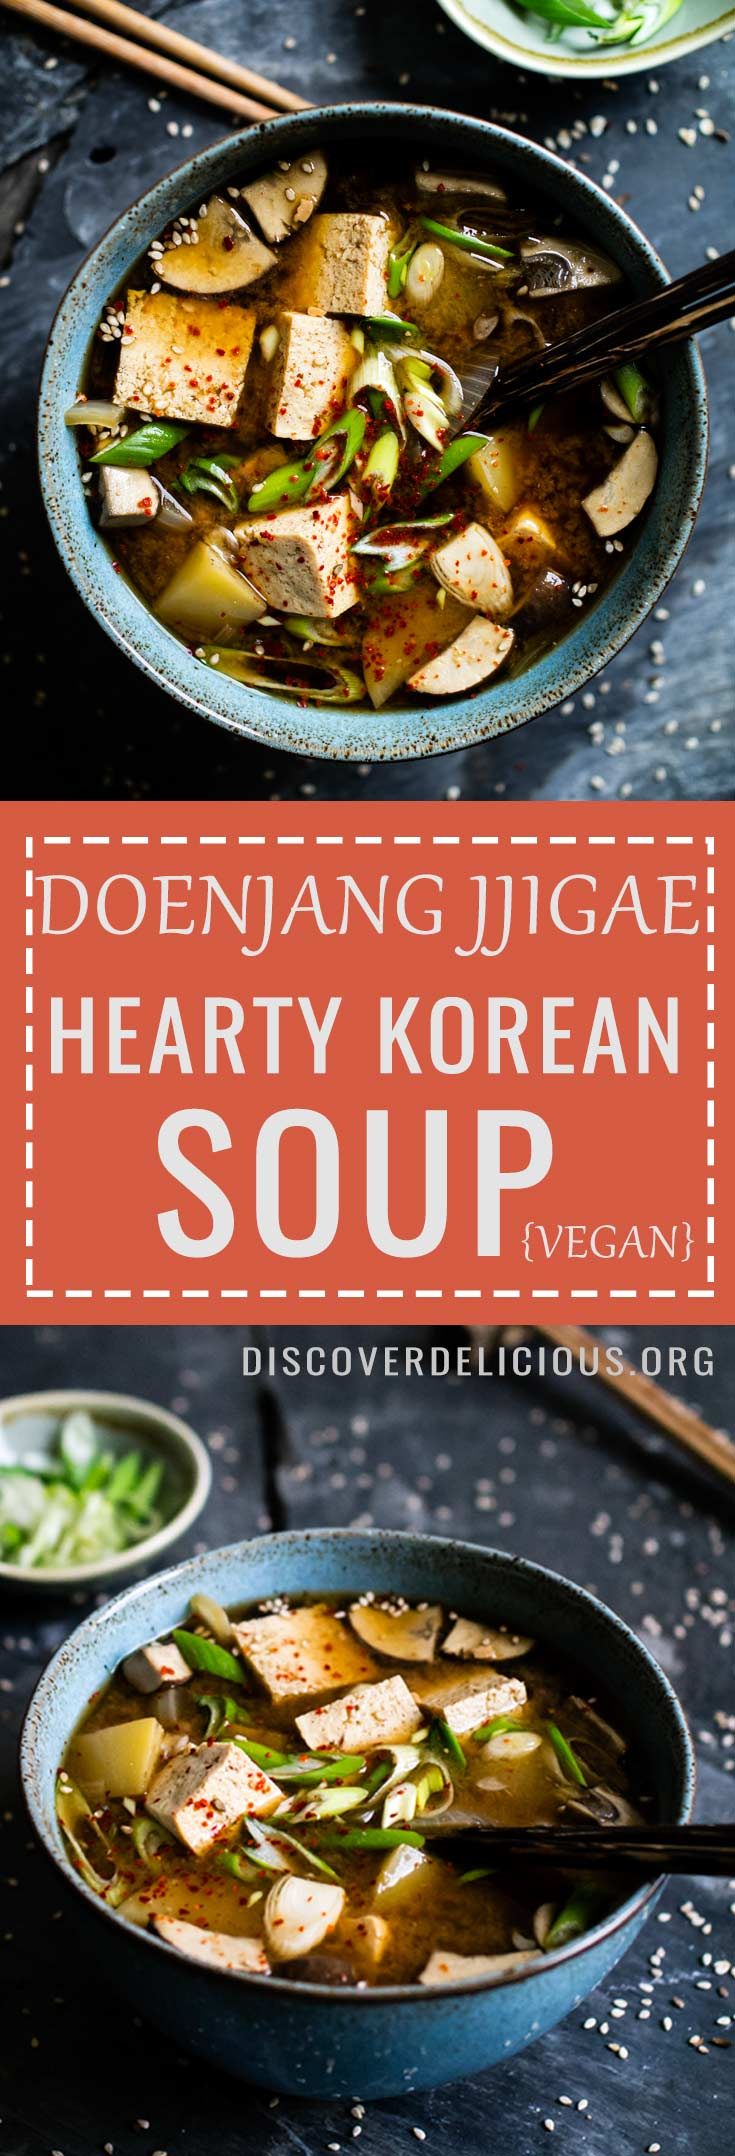 Doenjang Jjigae (hearty Korean soup). Popular Korean comfort food + vegan! Quick and easy to make. | Discover Delicious | www.discoverdelicious.org